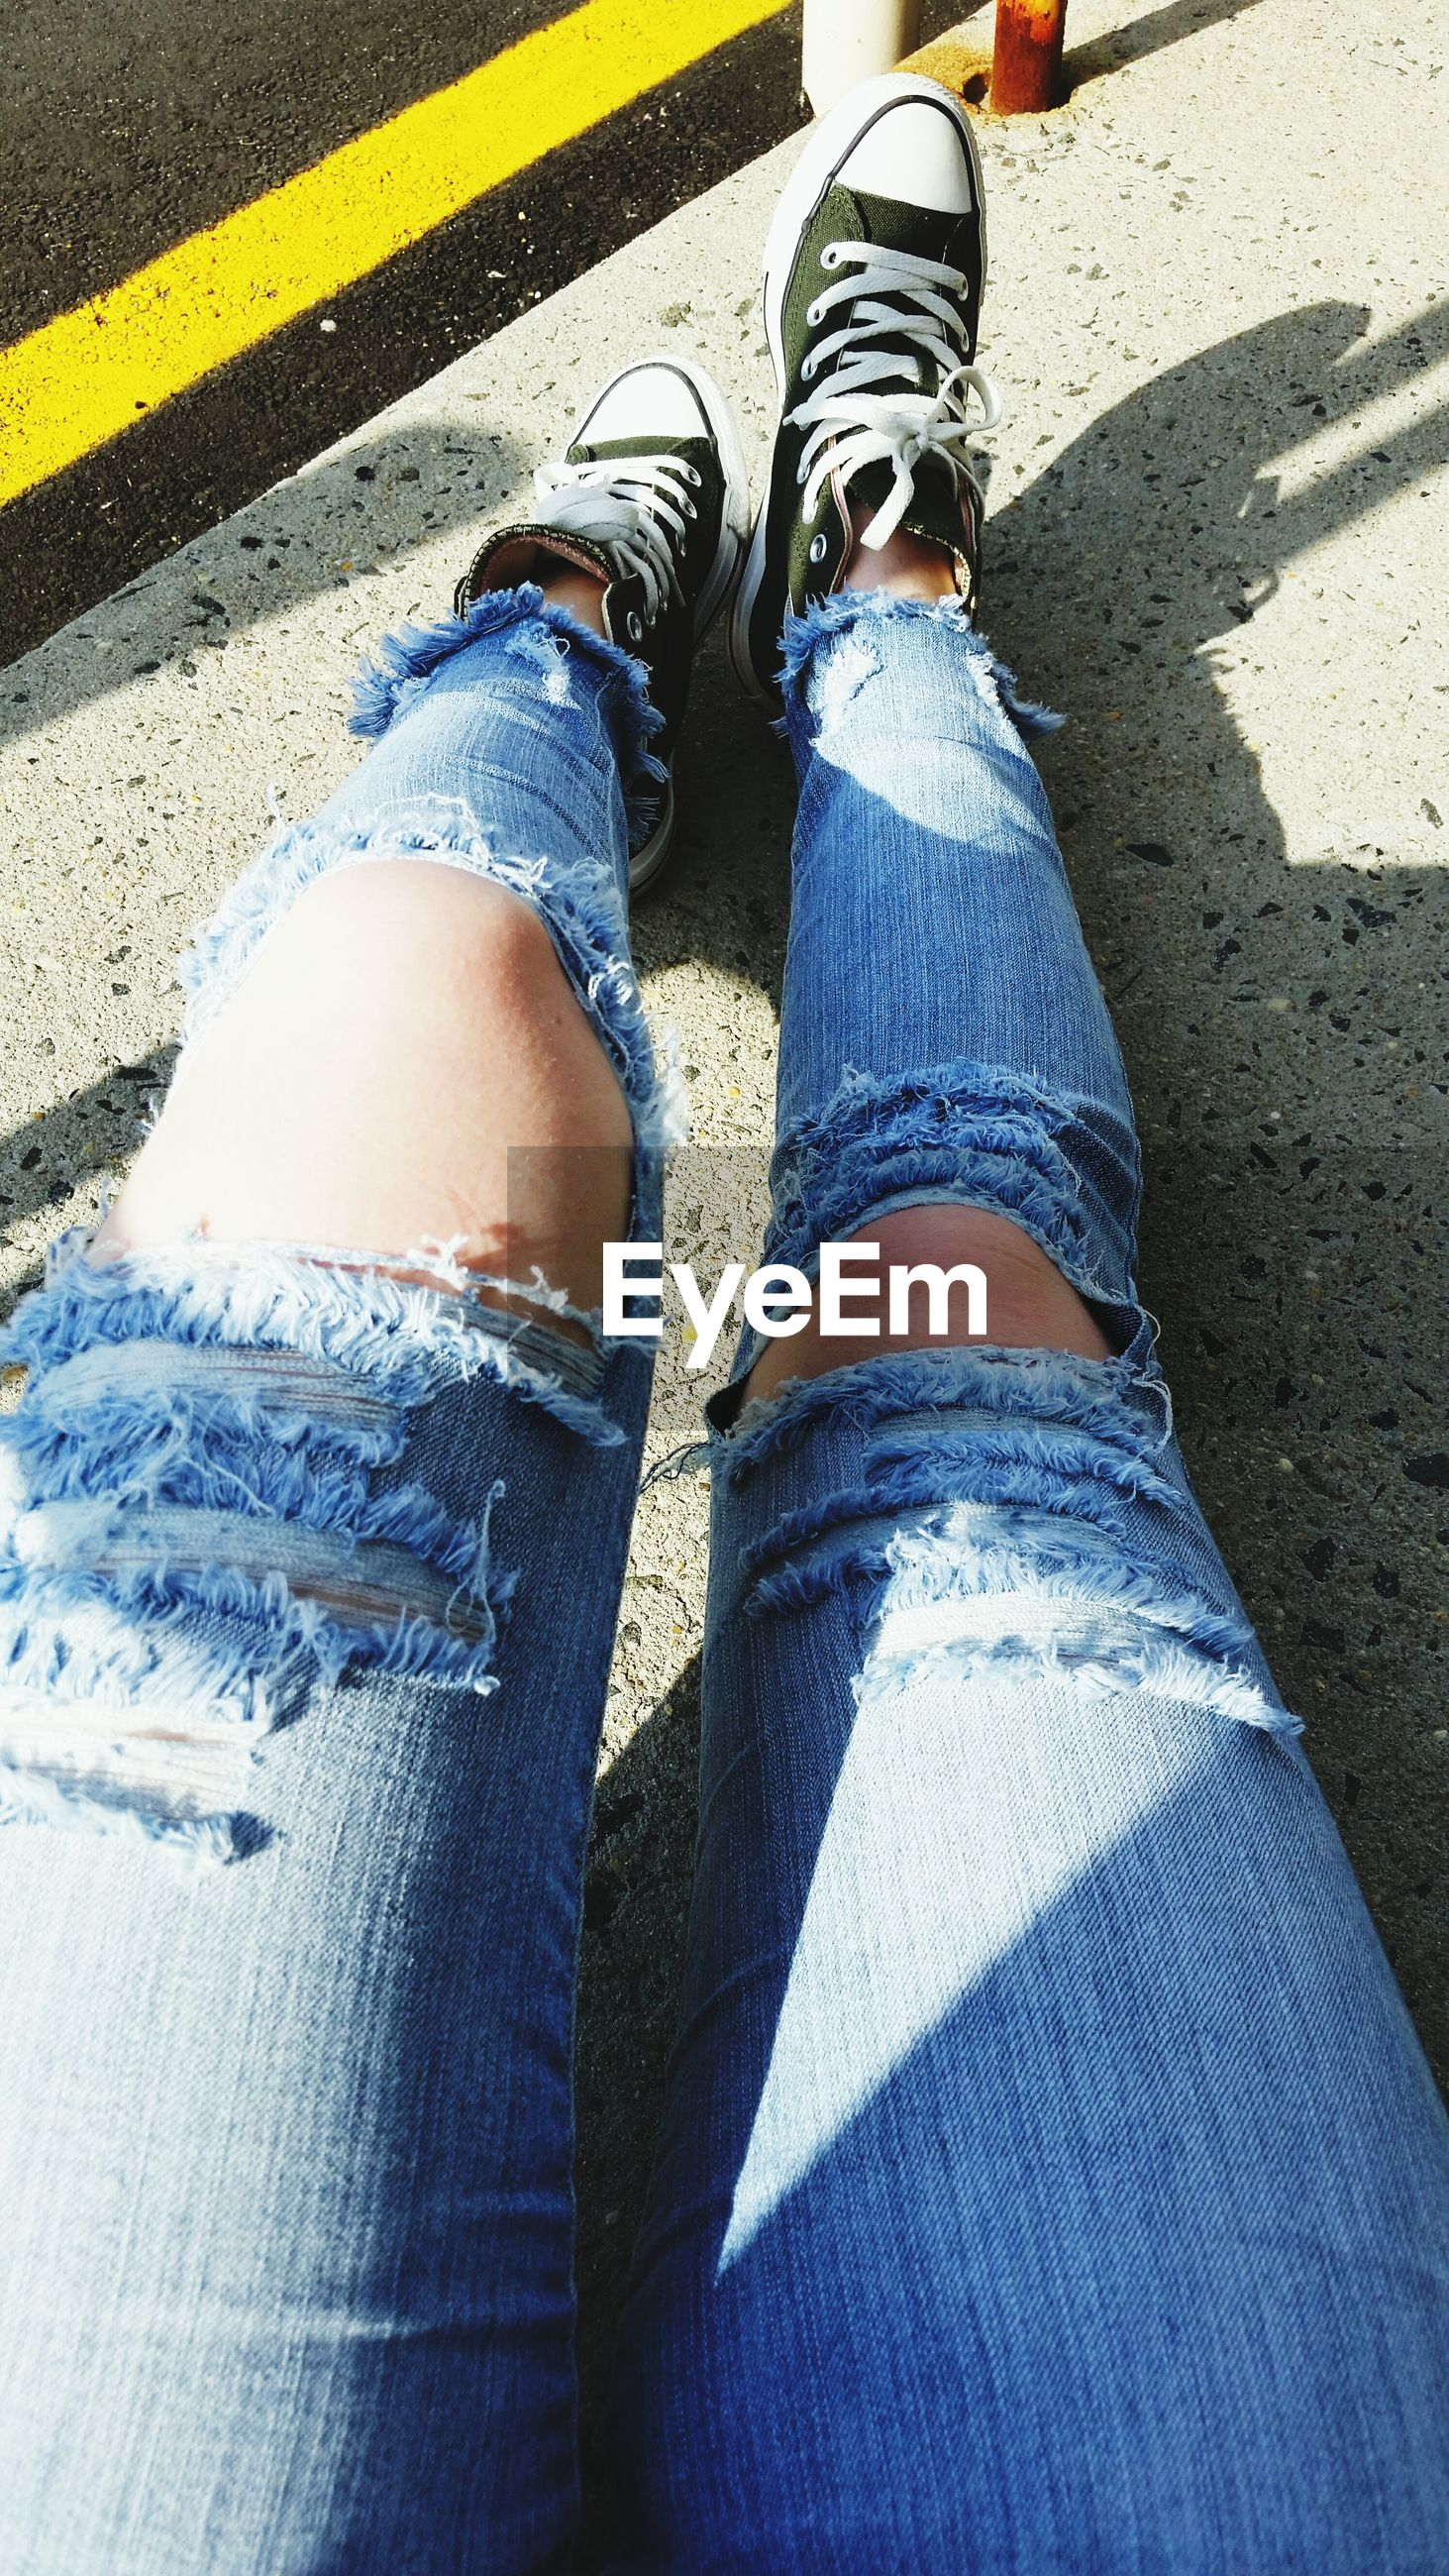 low section, person, shoe, lifestyles, jeans, standing, human foot, personal perspective, footwear, leisure activity, high angle view, casual clothing, men, street, canvas shoe, denim